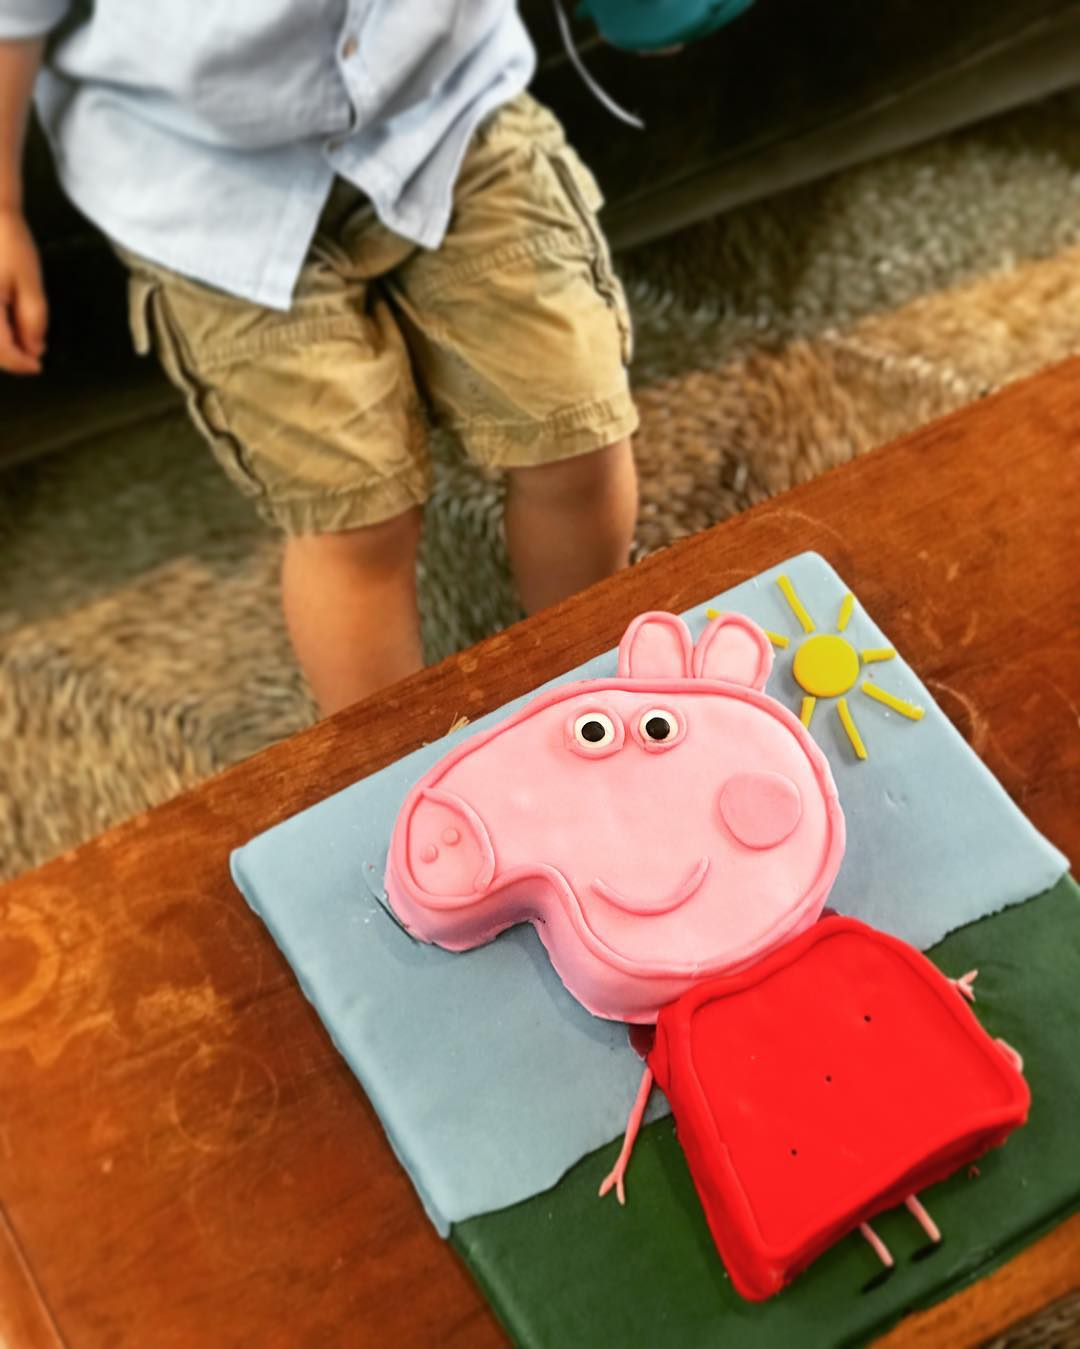 A peppa pig cake from dad Yotam Ottolenghi